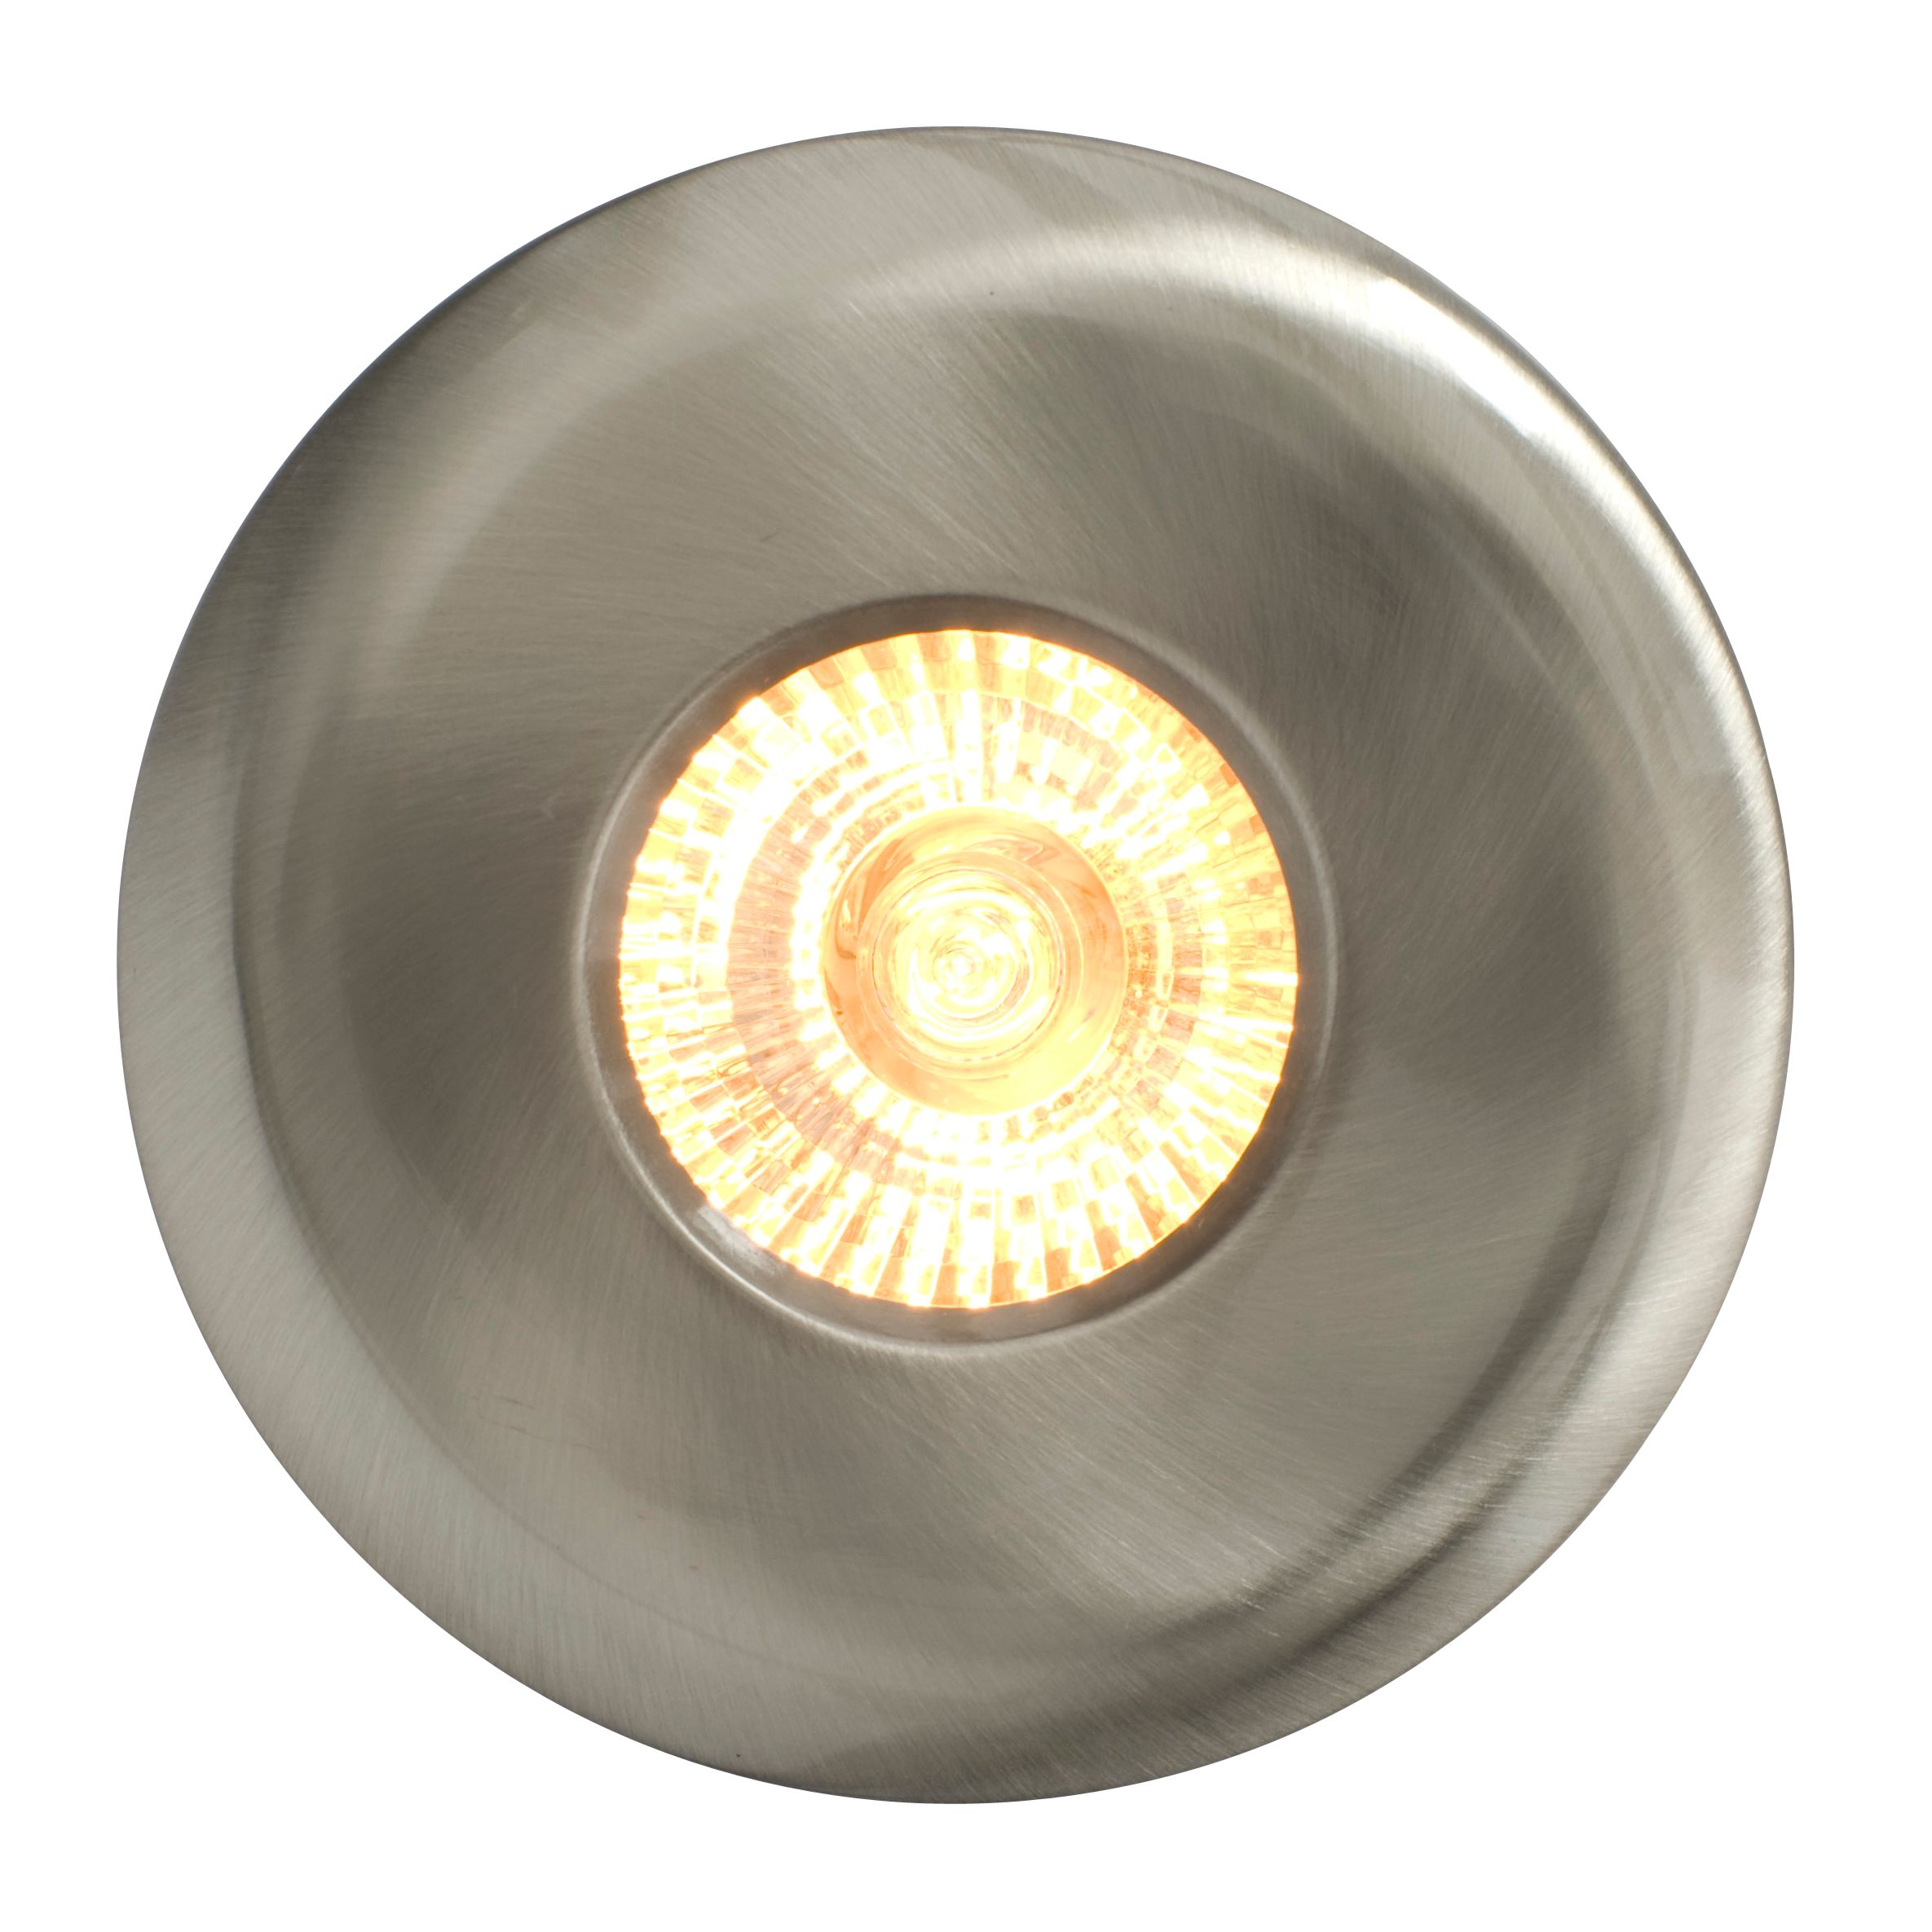 Ceiling Light Fittings At John Lewis : John lewis alvin bathroom ceiling light review compare